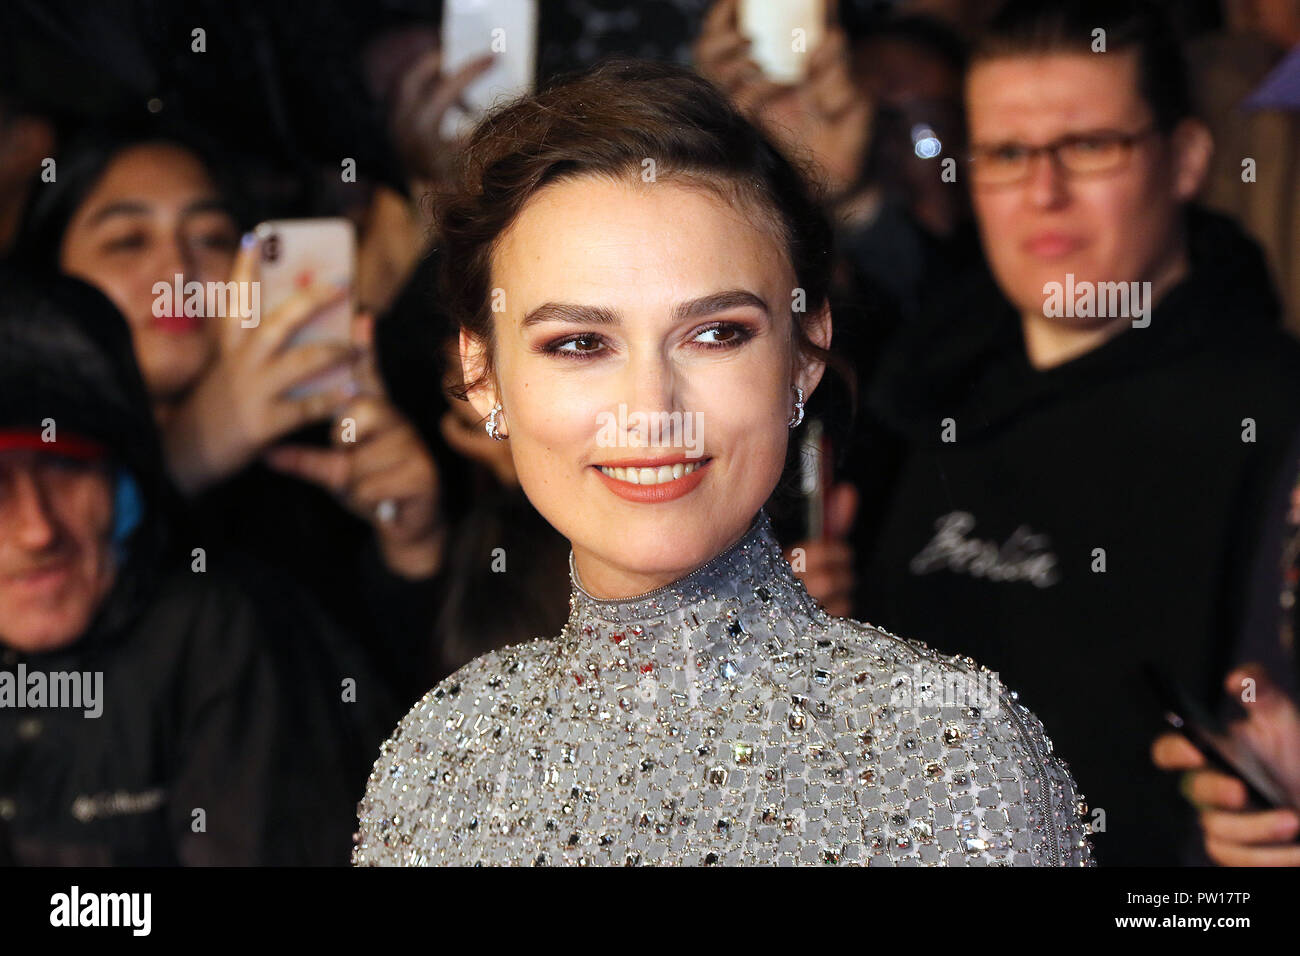 London, UK. 11th Oct 2018. Keira Knightley, Colette - UK Premiere, BFI London Film Festival Patrons Gala, Leicester Square, London, UK, 11 October 2018, Photo by Richard Goldschmidt Credit: Rich Gold/Alamy Live News - Stock Image